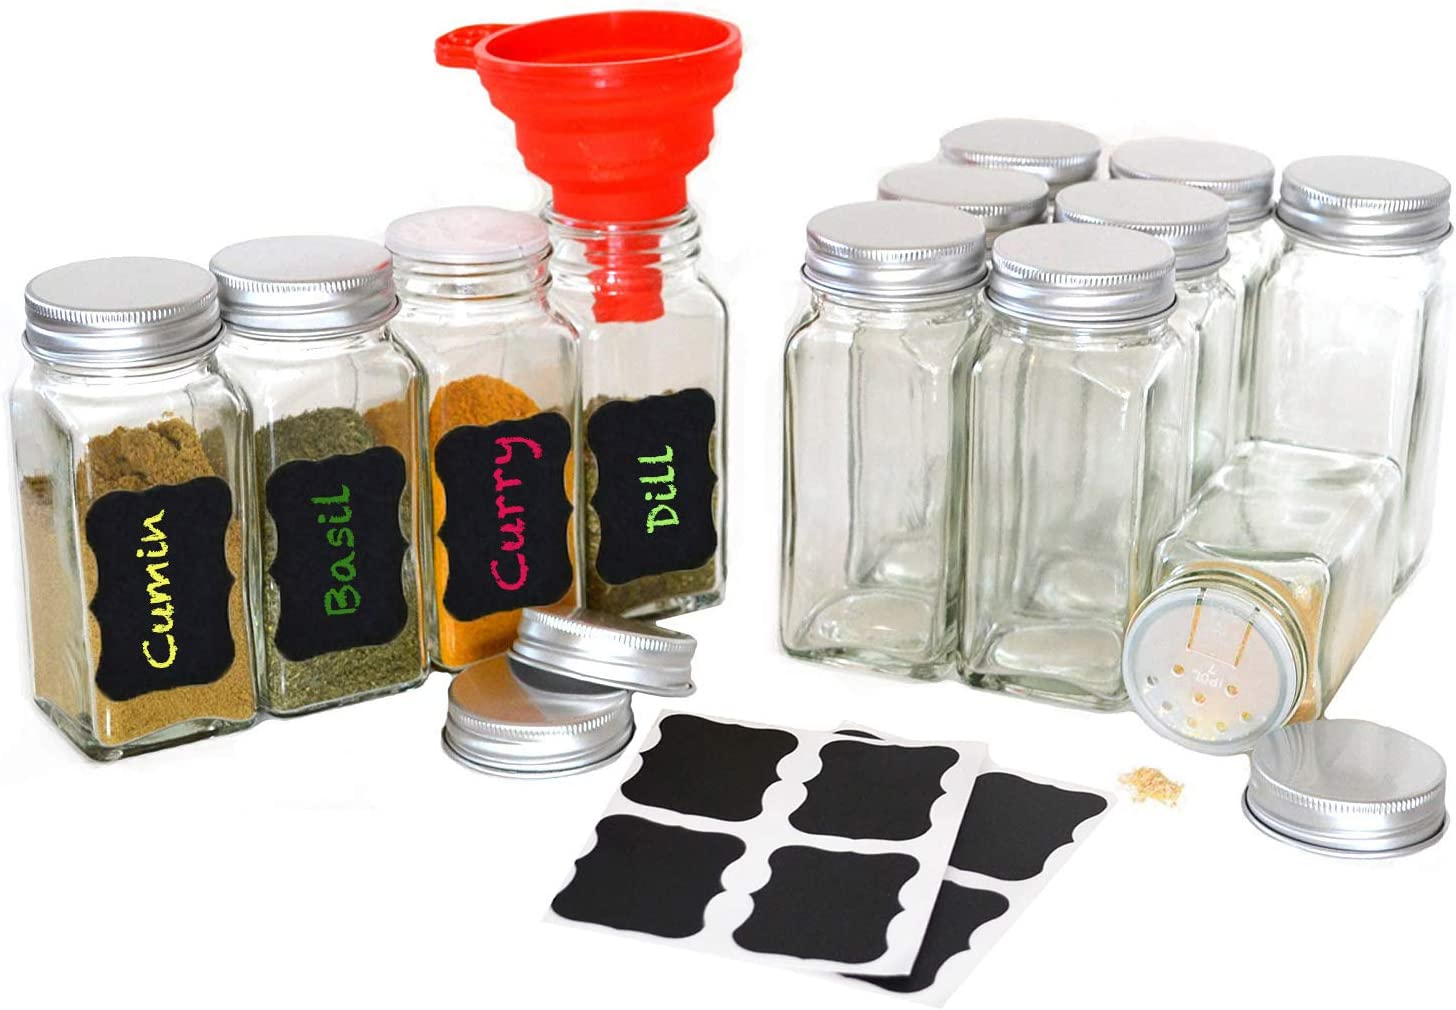 Square Glass Spice Jars Storage Small Container For Kitchen Organizing 12 Pieces